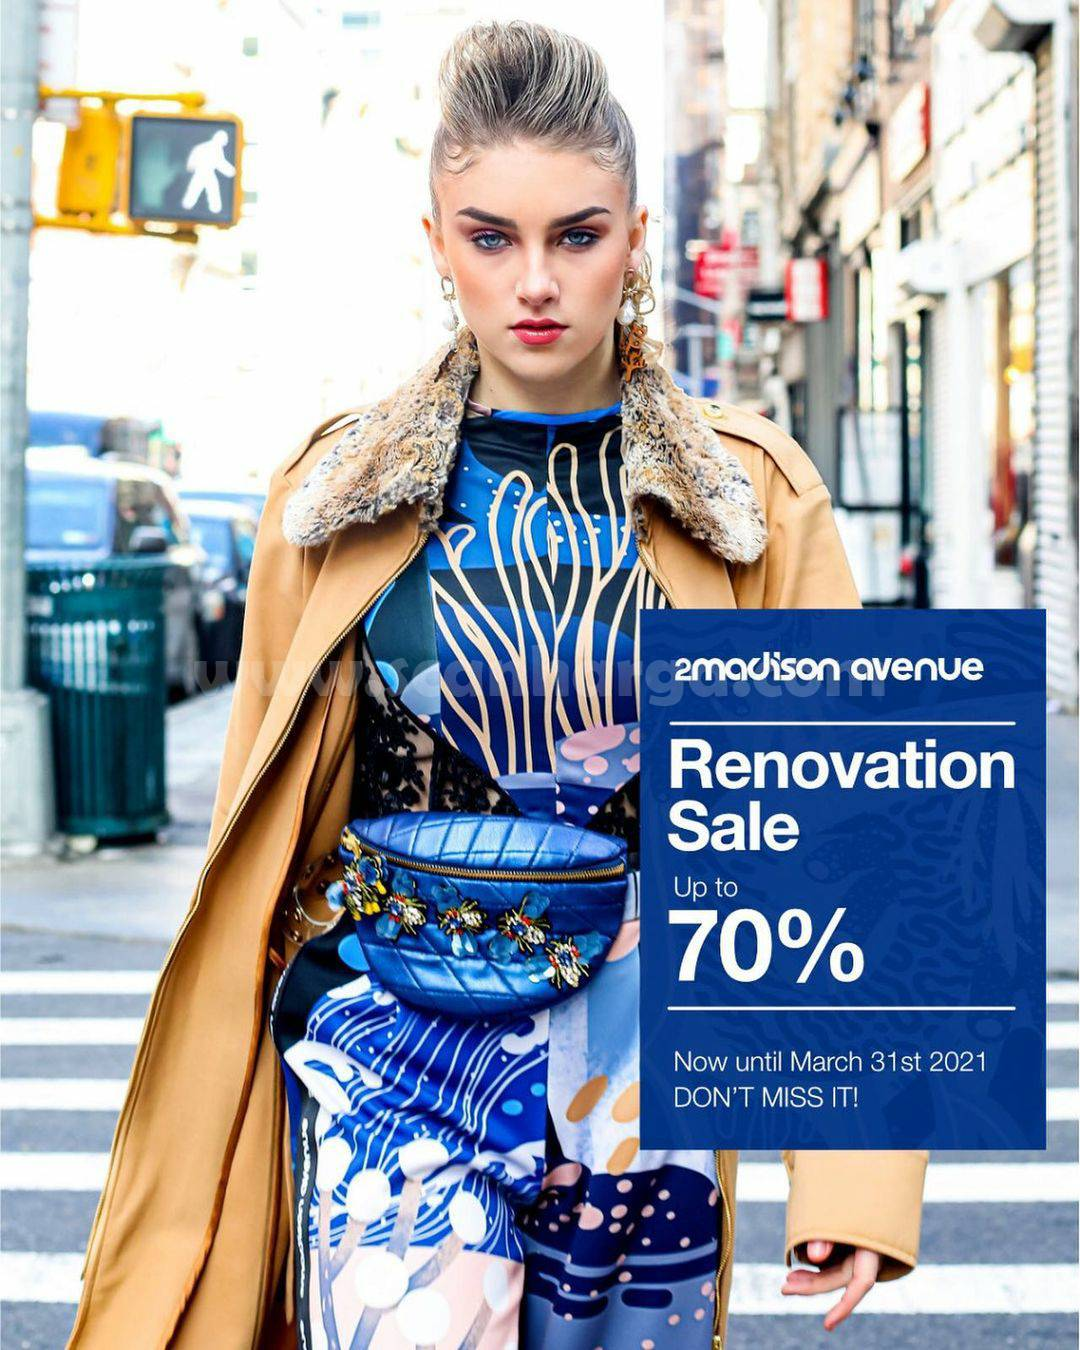 2Madison Avenue Renovation SALE Up to 70% Off